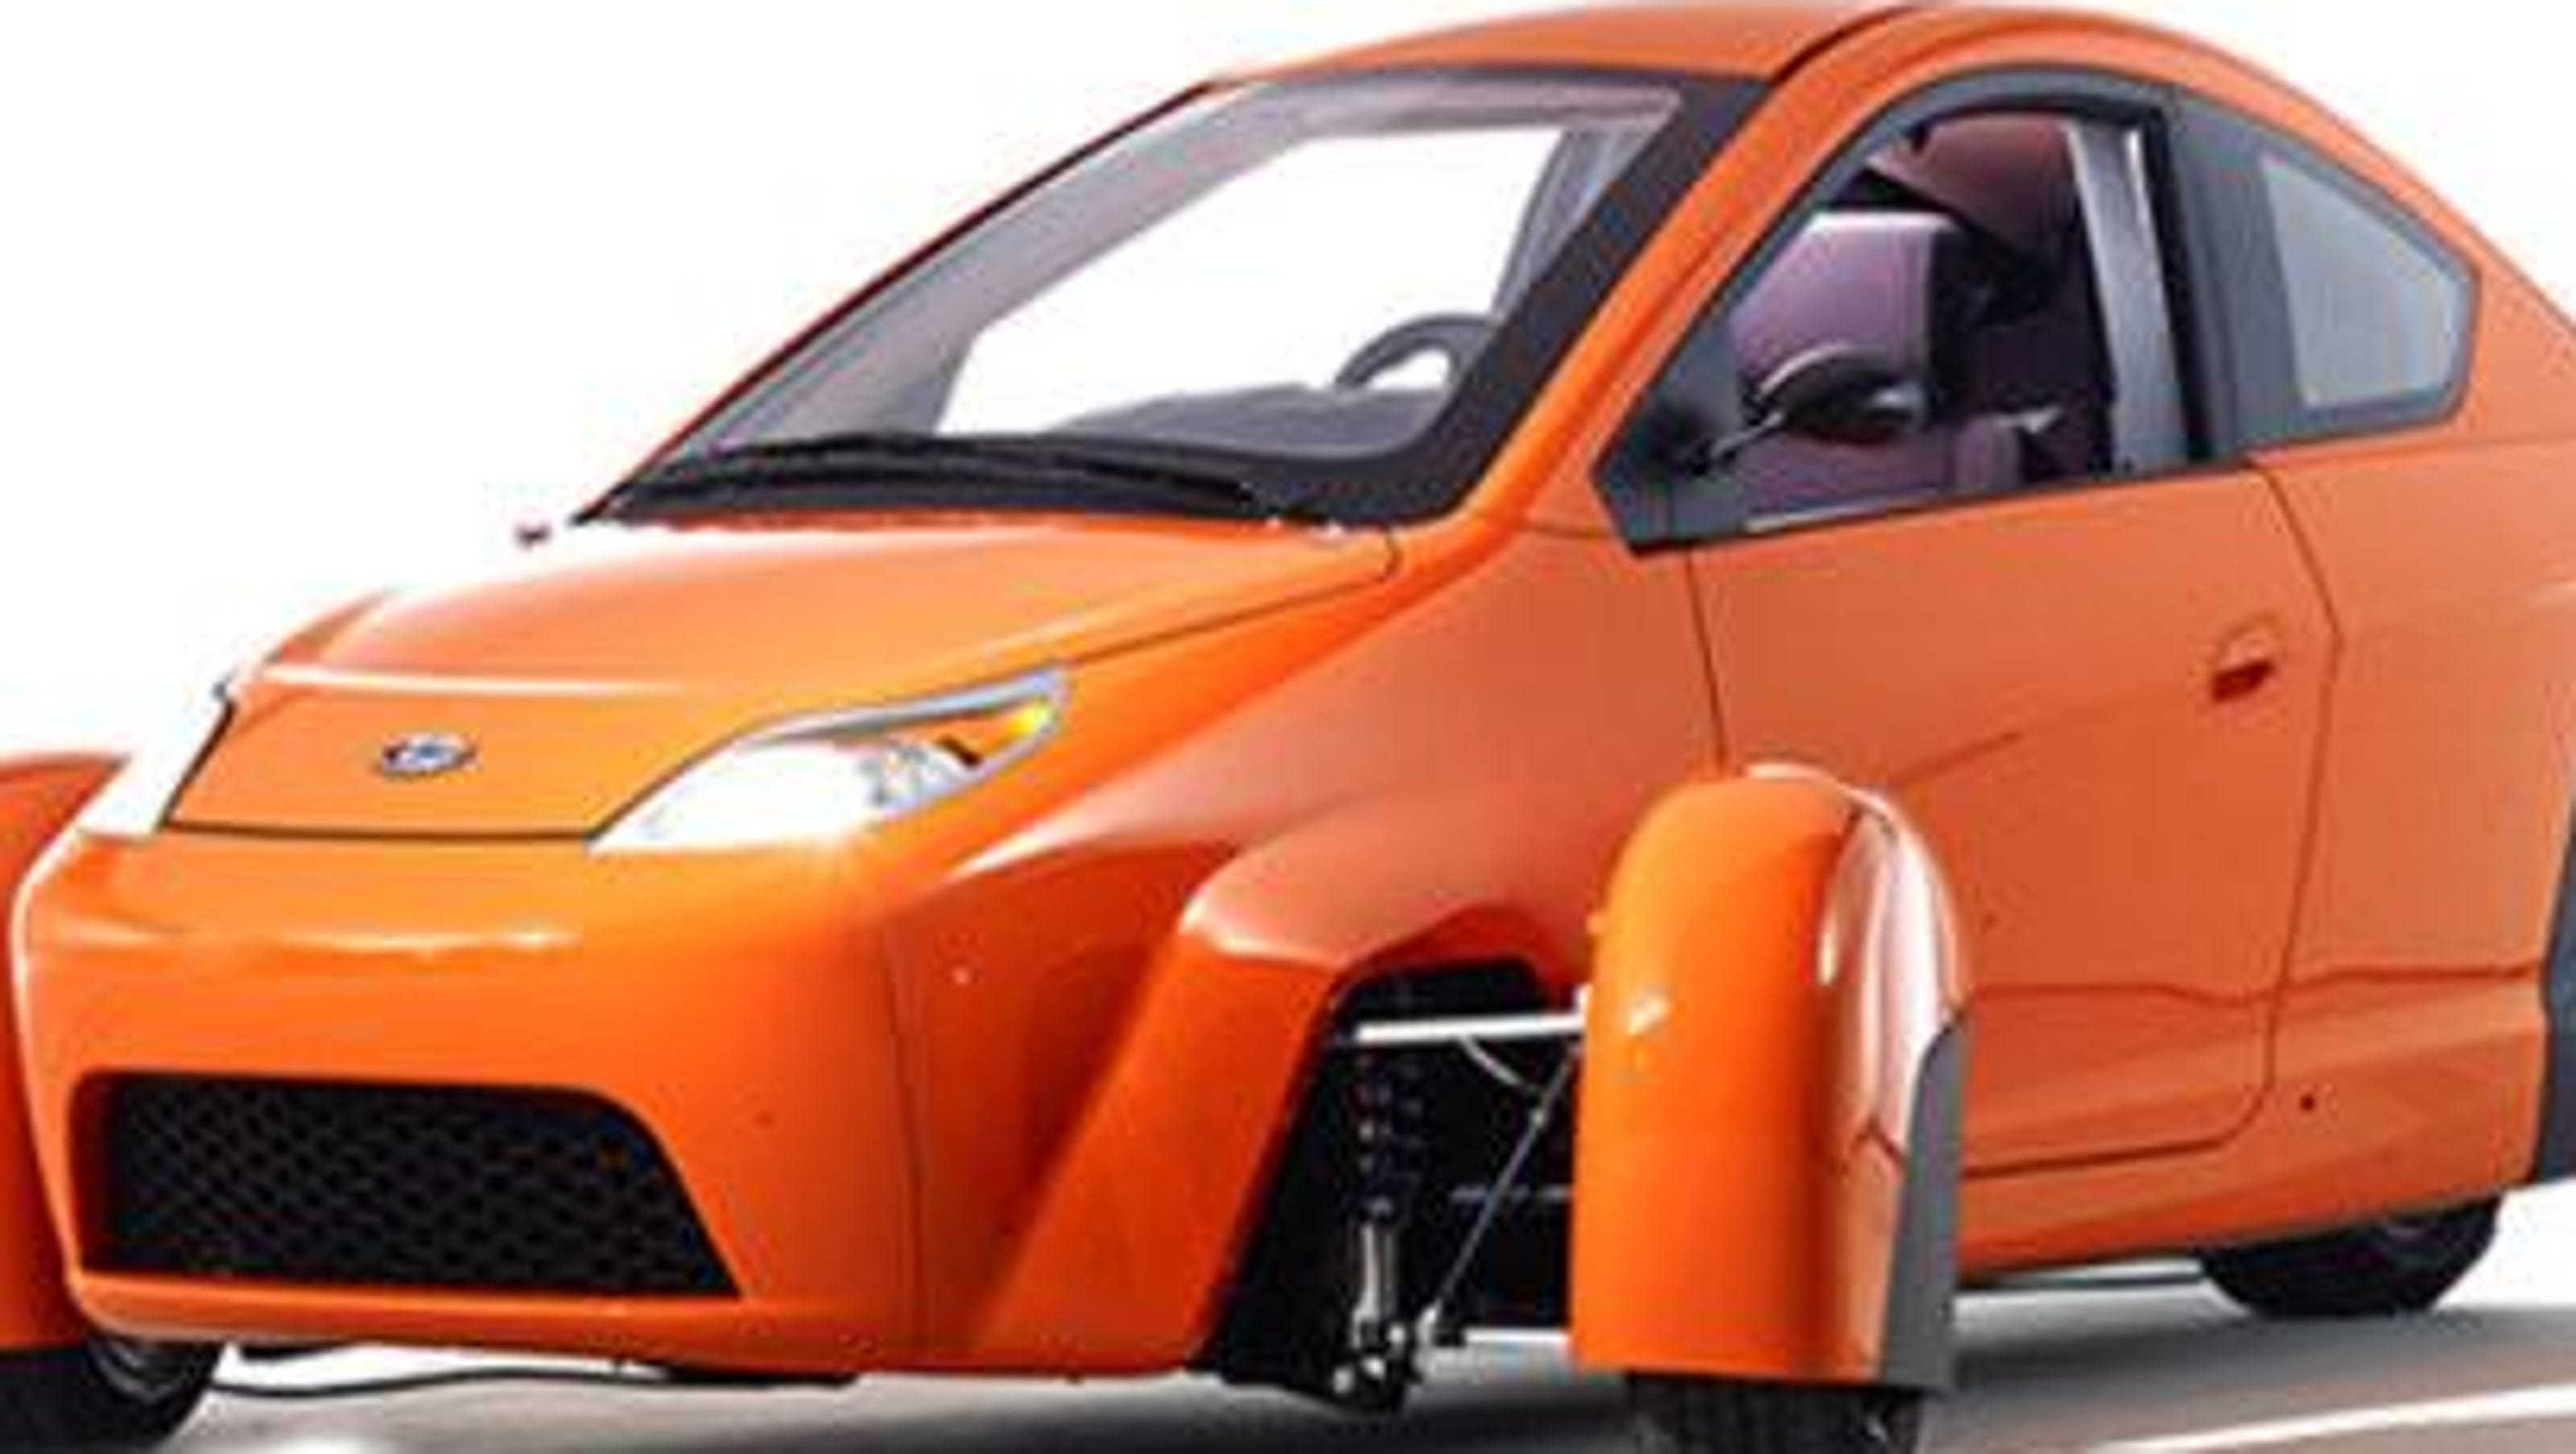 Elio stock options